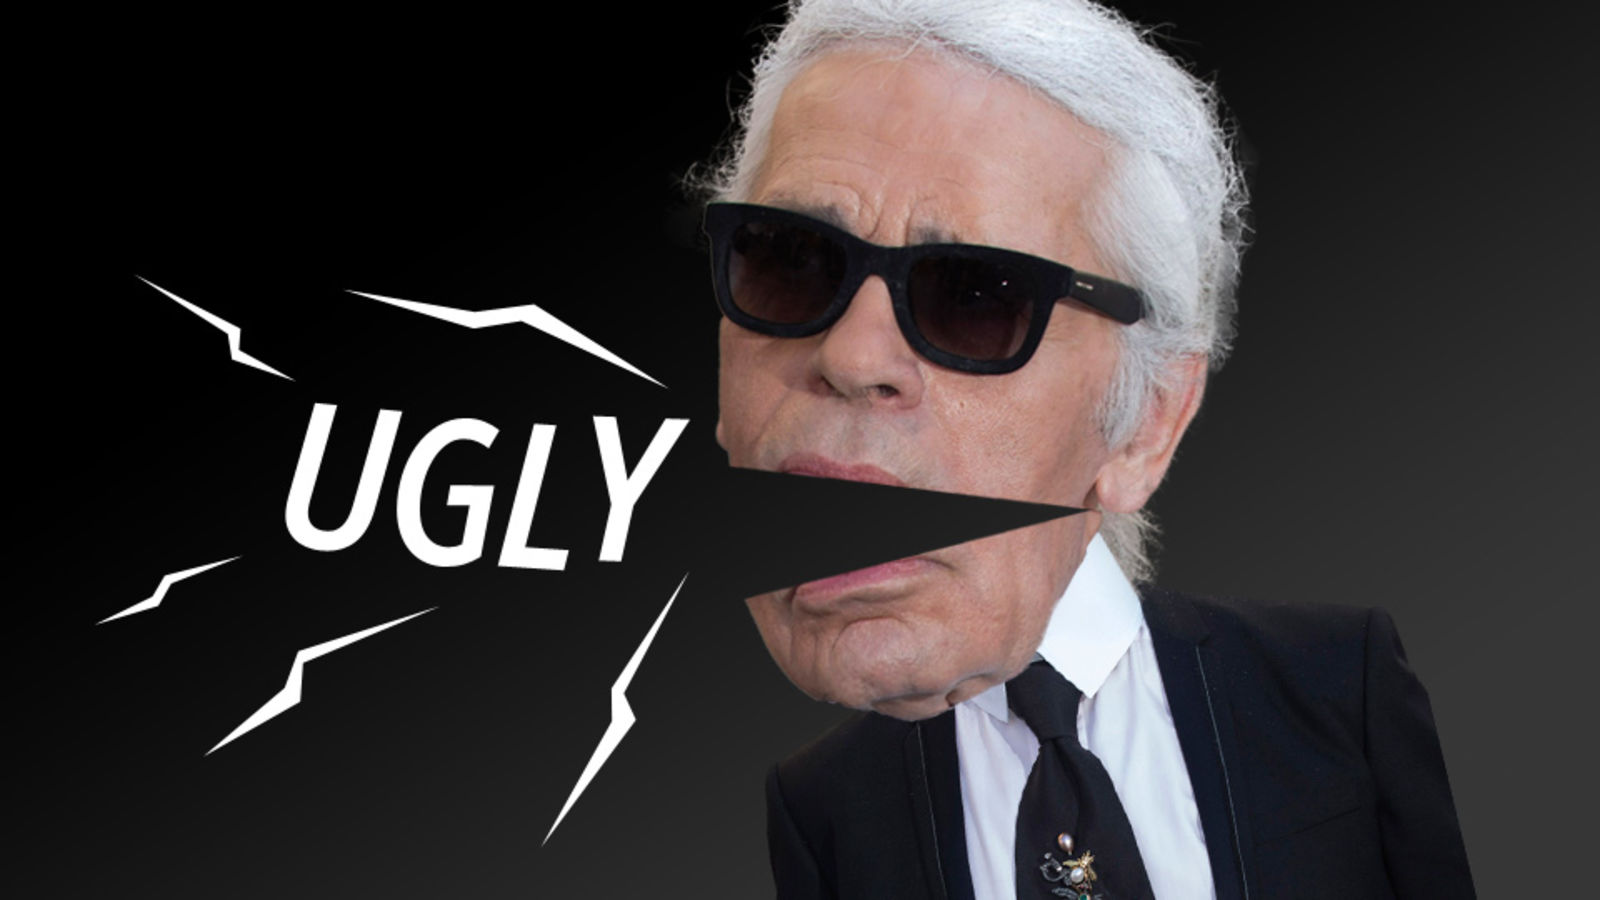 Photo courtesy of  Jezebel's awesome article  about Karl. Be sure to go over and give it a read so you can get an idea of why we think he can just fade away.